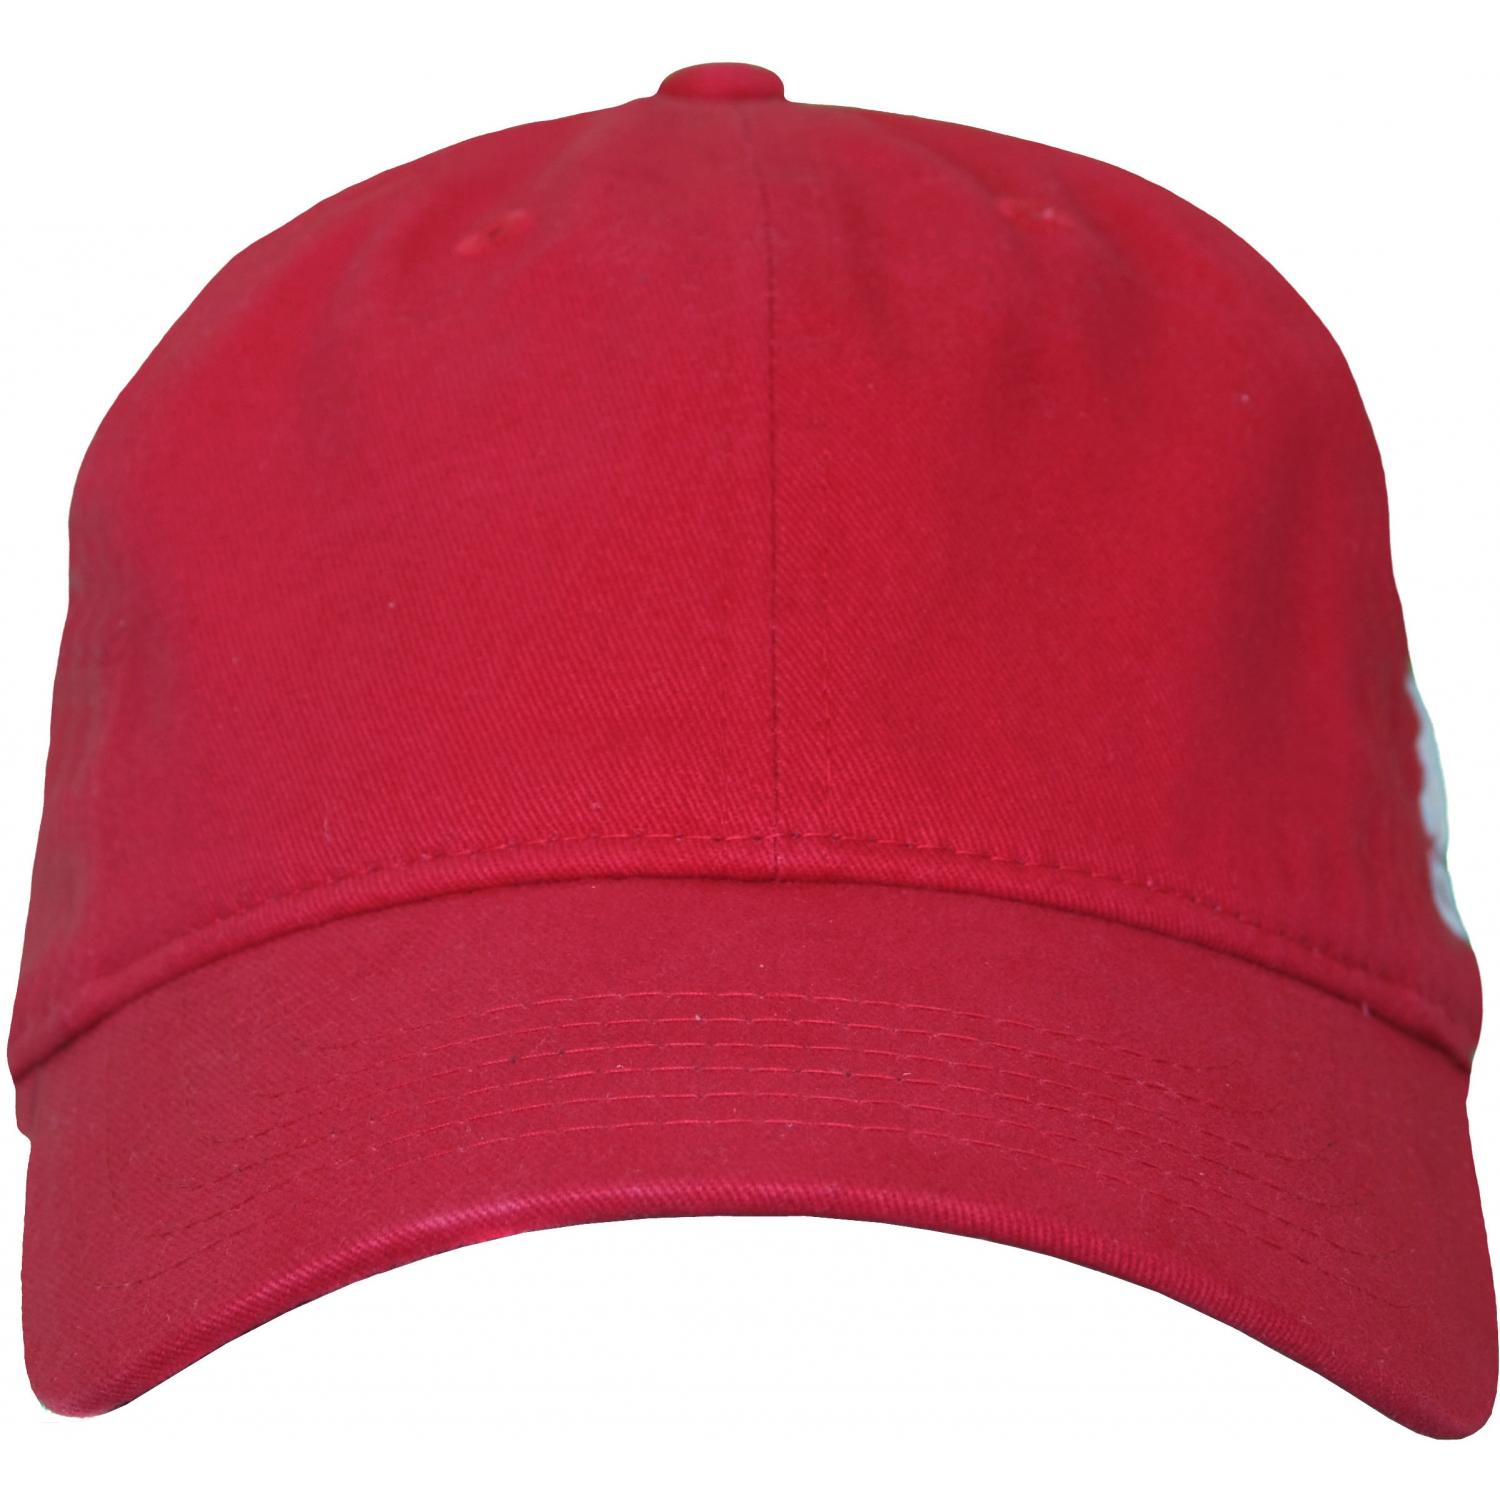 Adidas Golf Relaxed Cresting Cap - University Red